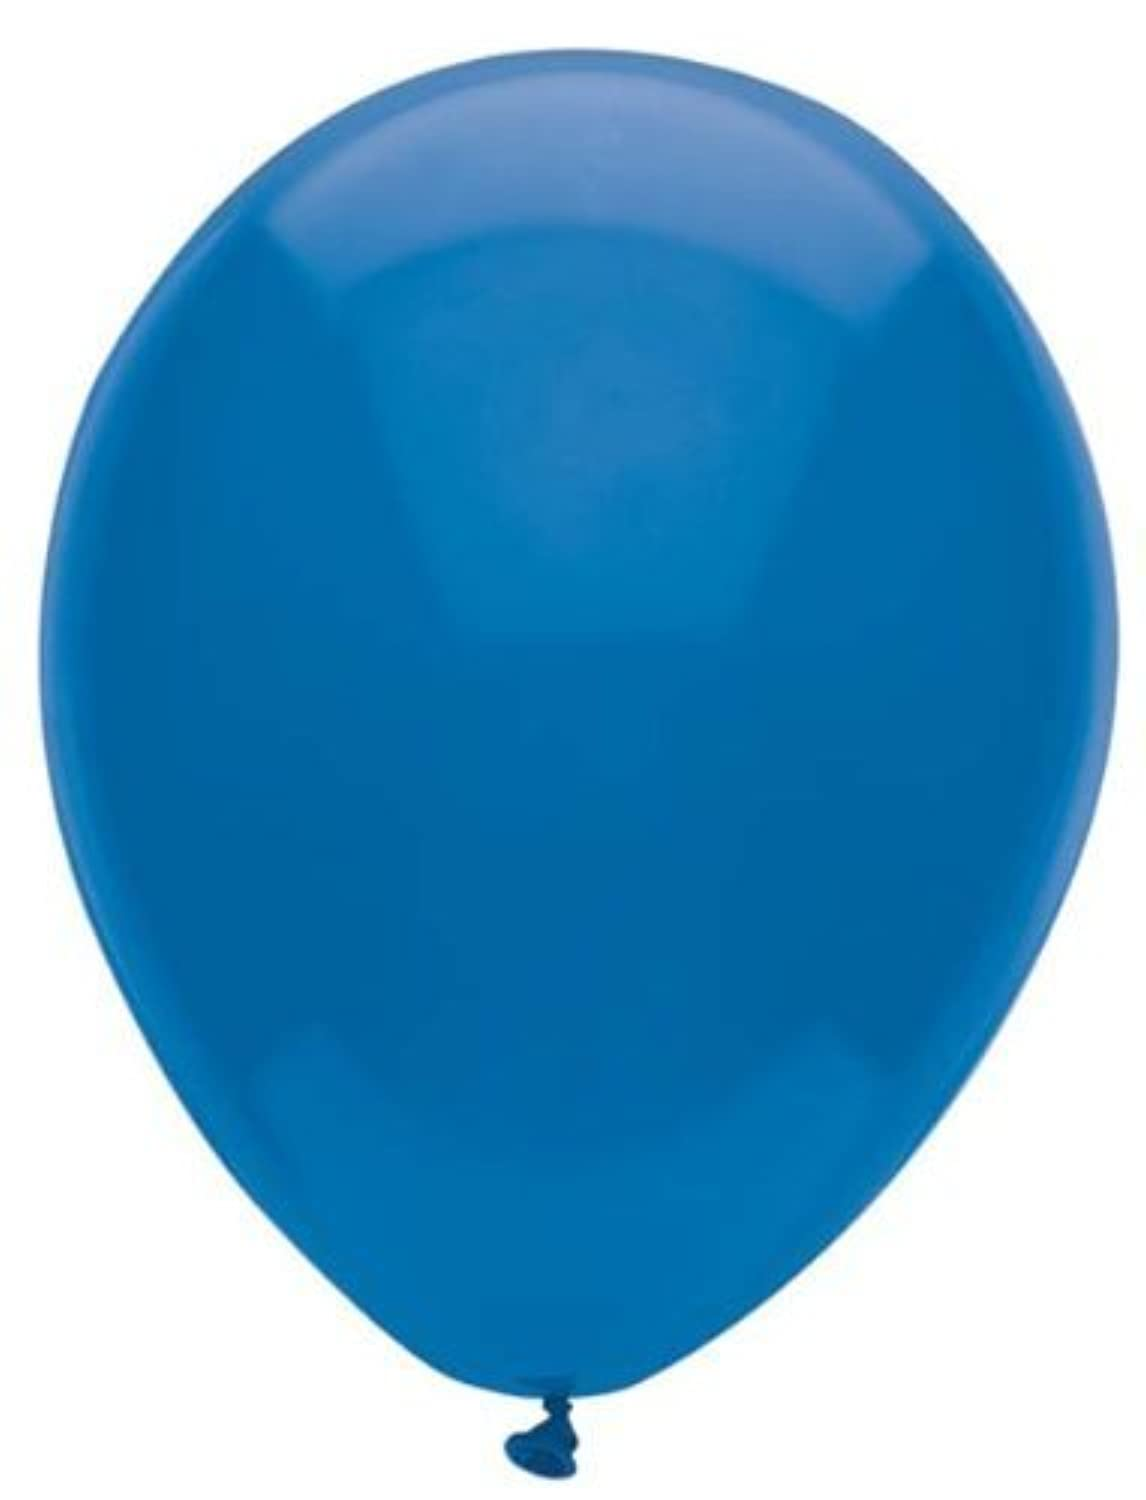 12 Inch Midnight Blue Latex Balloons 72CT by PartyMate [並行輸入品]